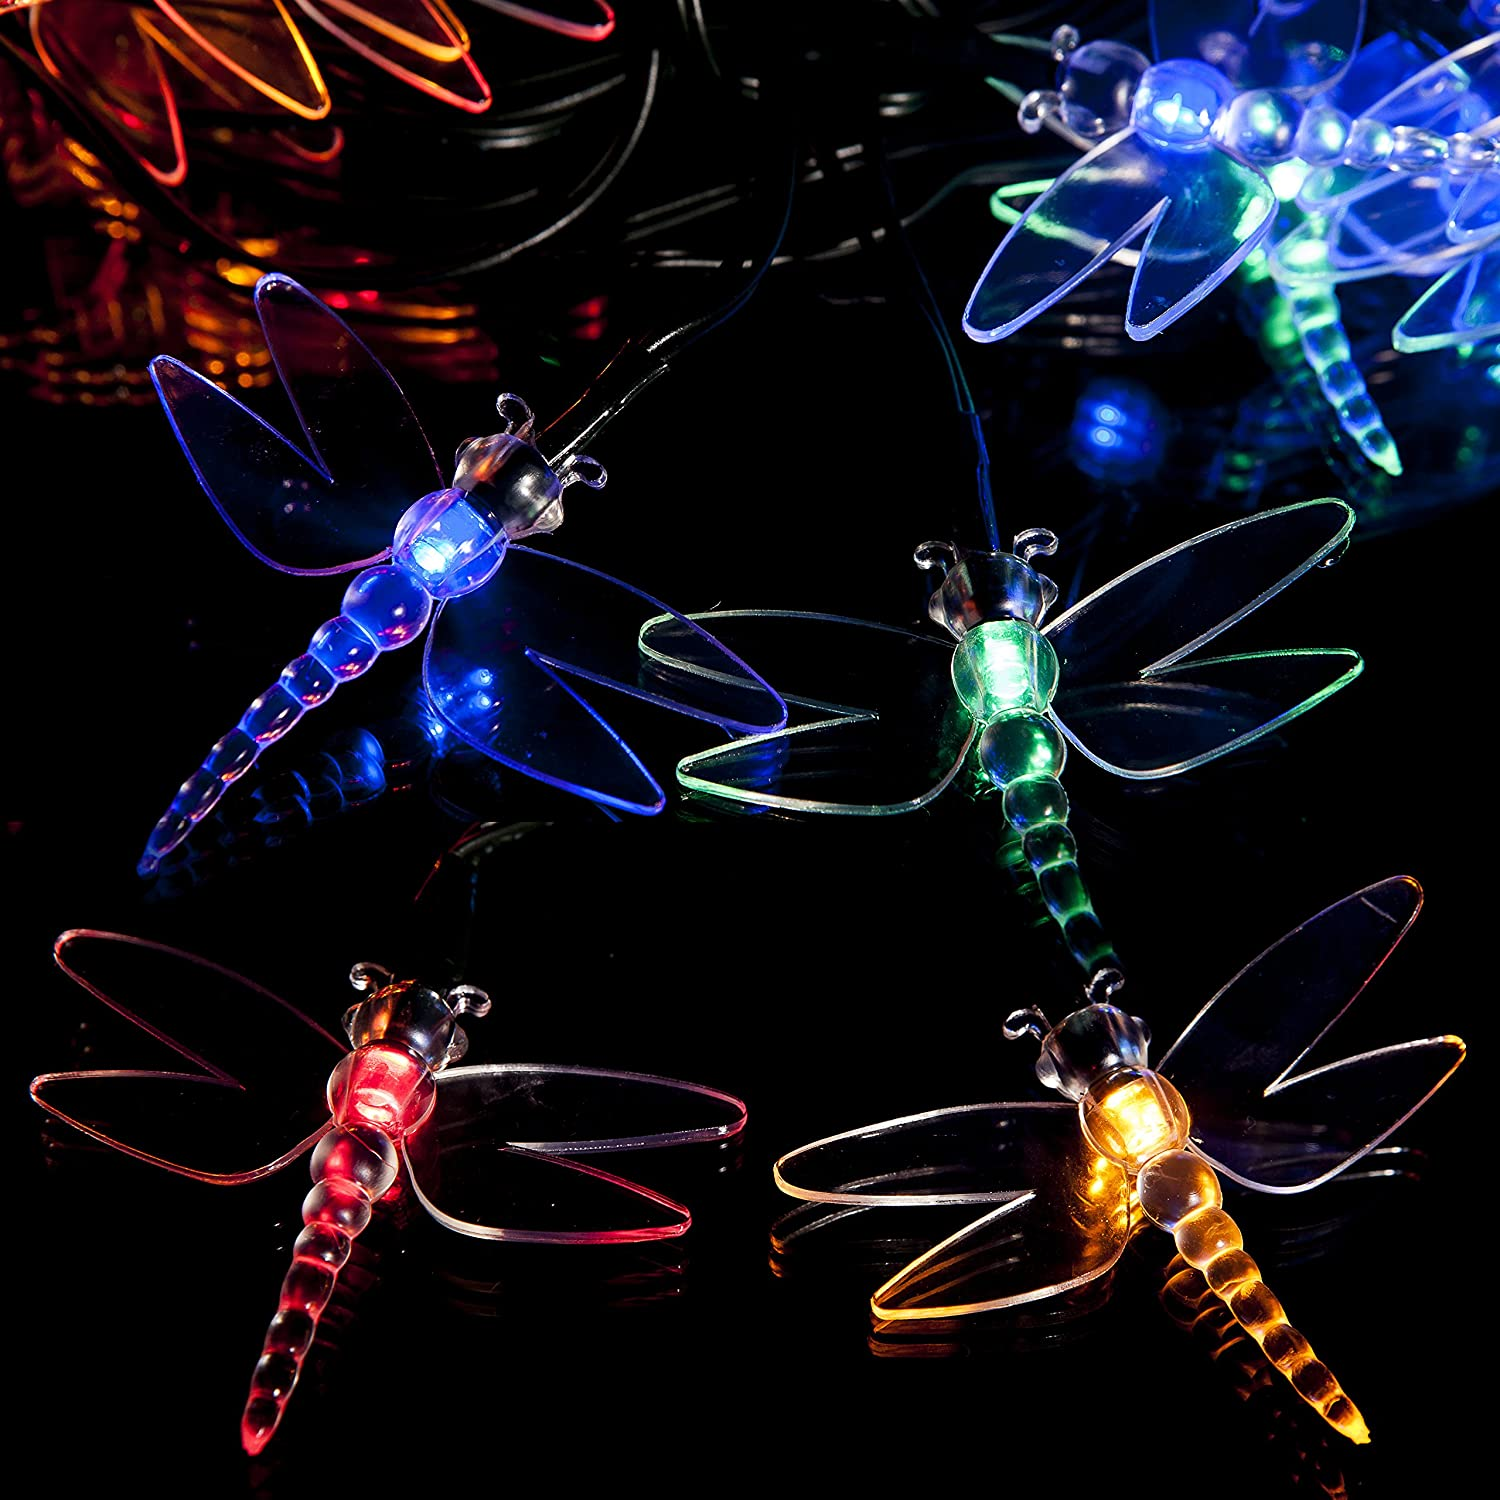 Shed Driveway Fence Outdoor for Christmas Patio 50 Multi-Colour LED Dragonfly Solar Powered Fairy Lights Ornament Waterproof Solar Decoration String Lights with Built-in Night Sensor Yard Stairs and Outside by SPV Path Garden Garage Walkway